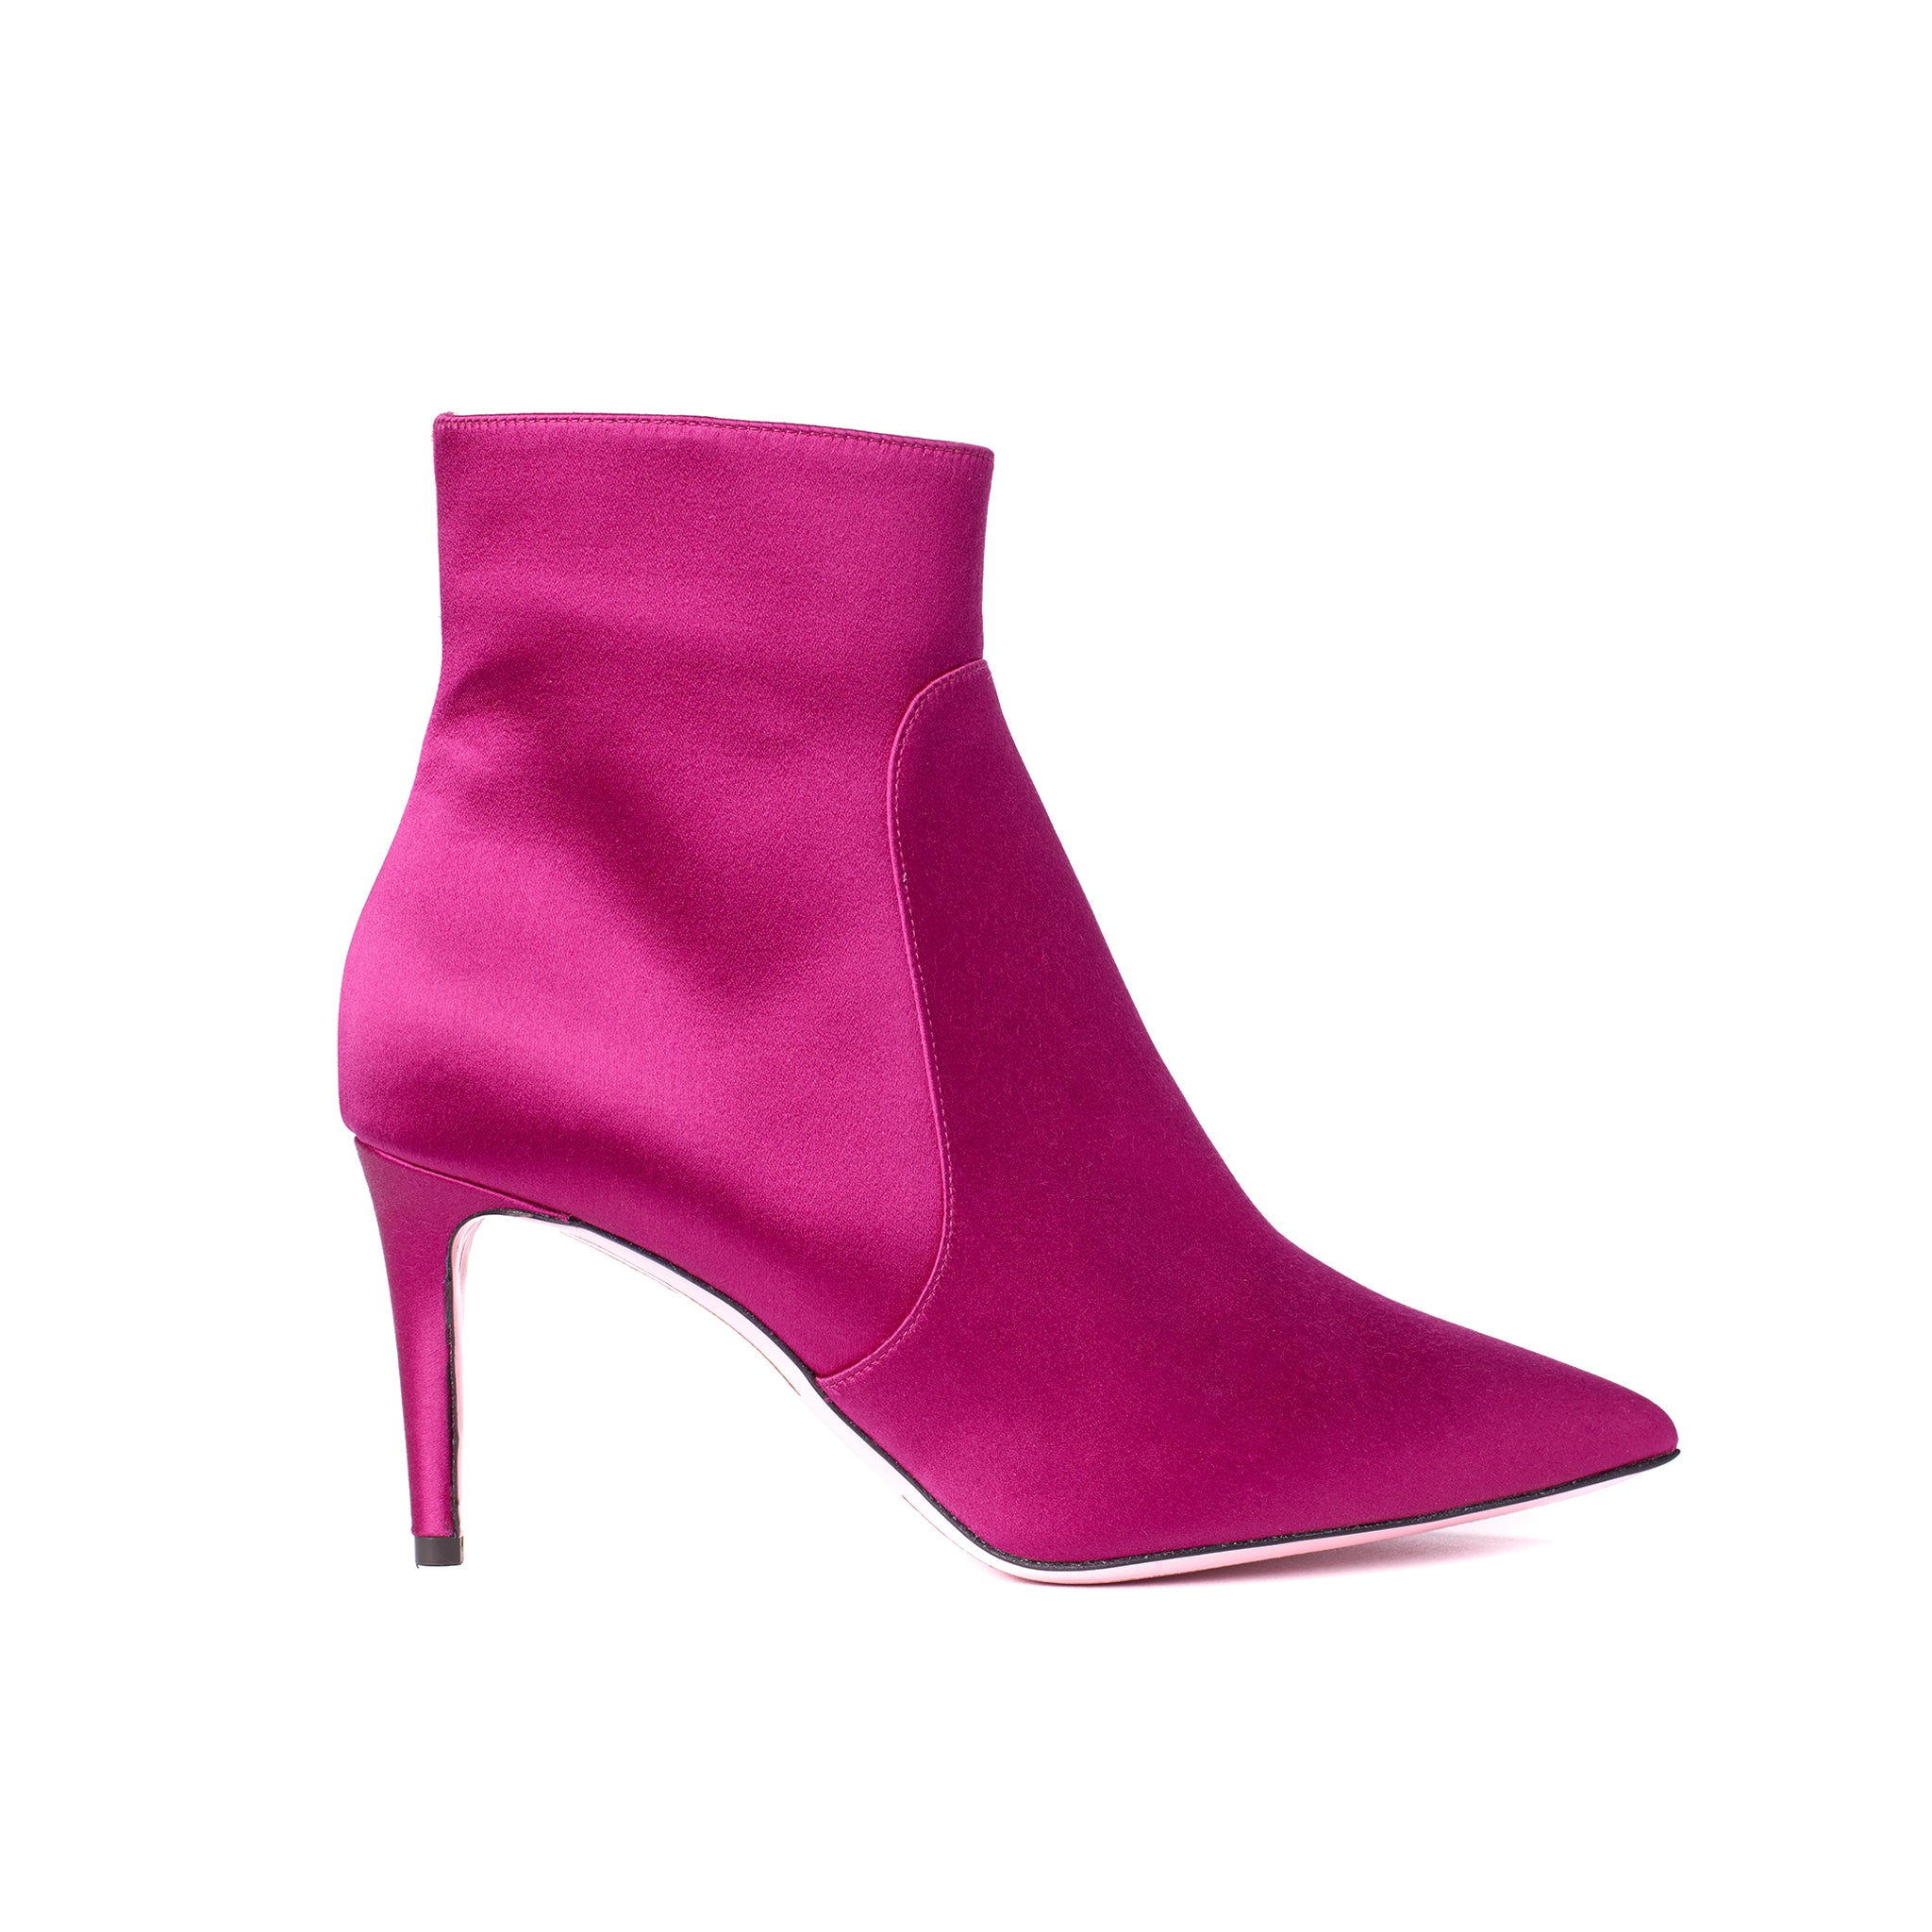 Phare classic heel Fuchsia Satin high heel boot, made in Italy